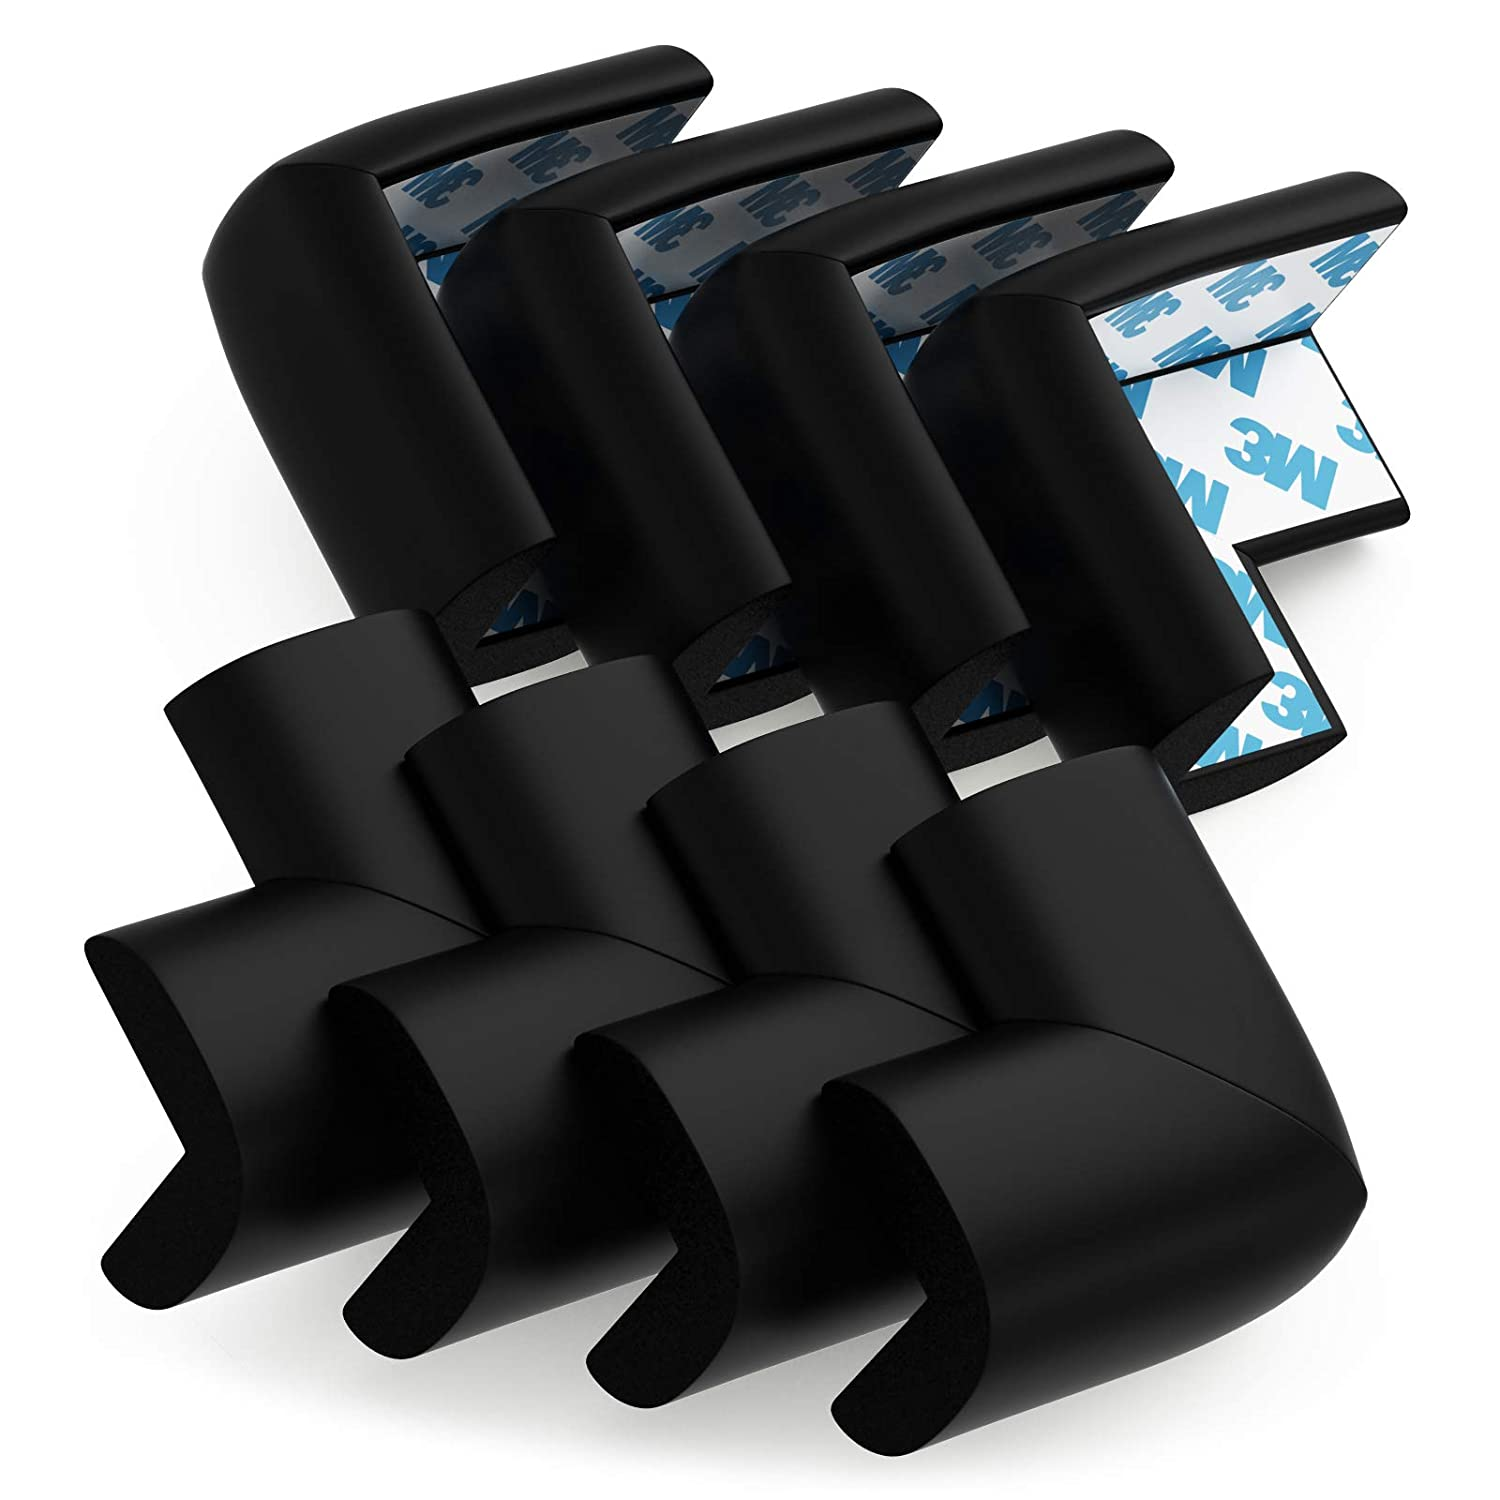 Table Corner Protectors for Baby Safety - Pre-Taped Sharp Corner Cushions to Prevent Head & Knee Injuries, 8 Pack, (Black)